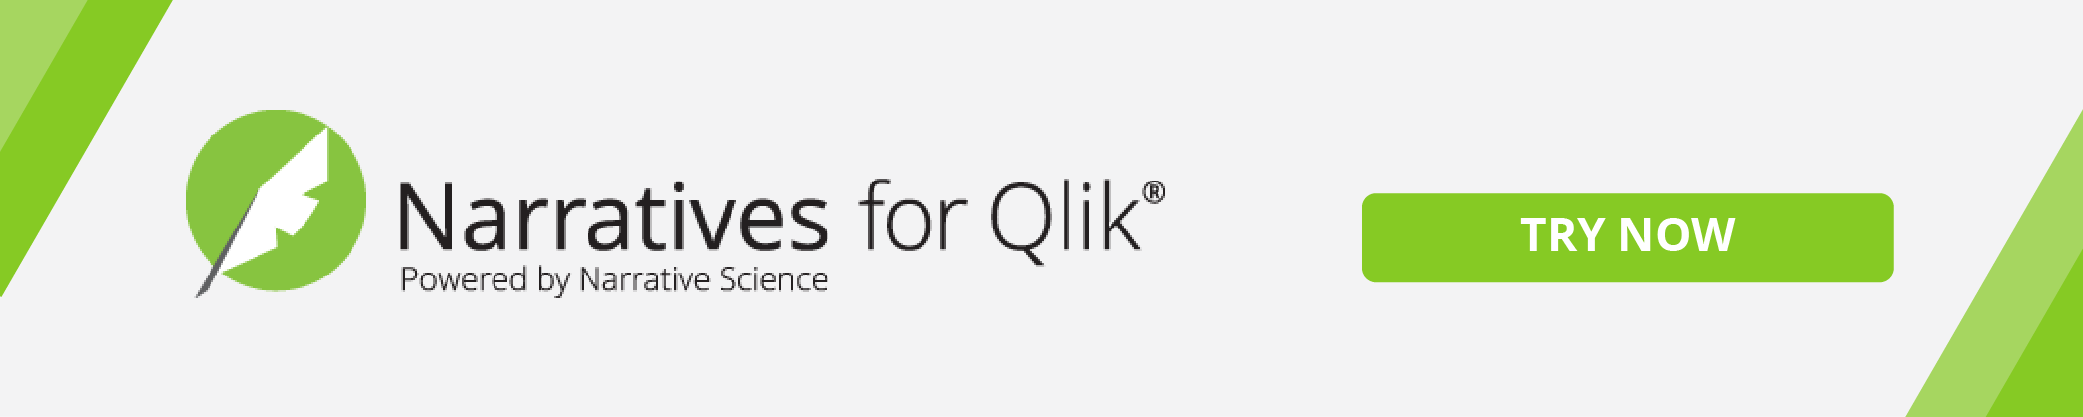 Narratives for Qlik download